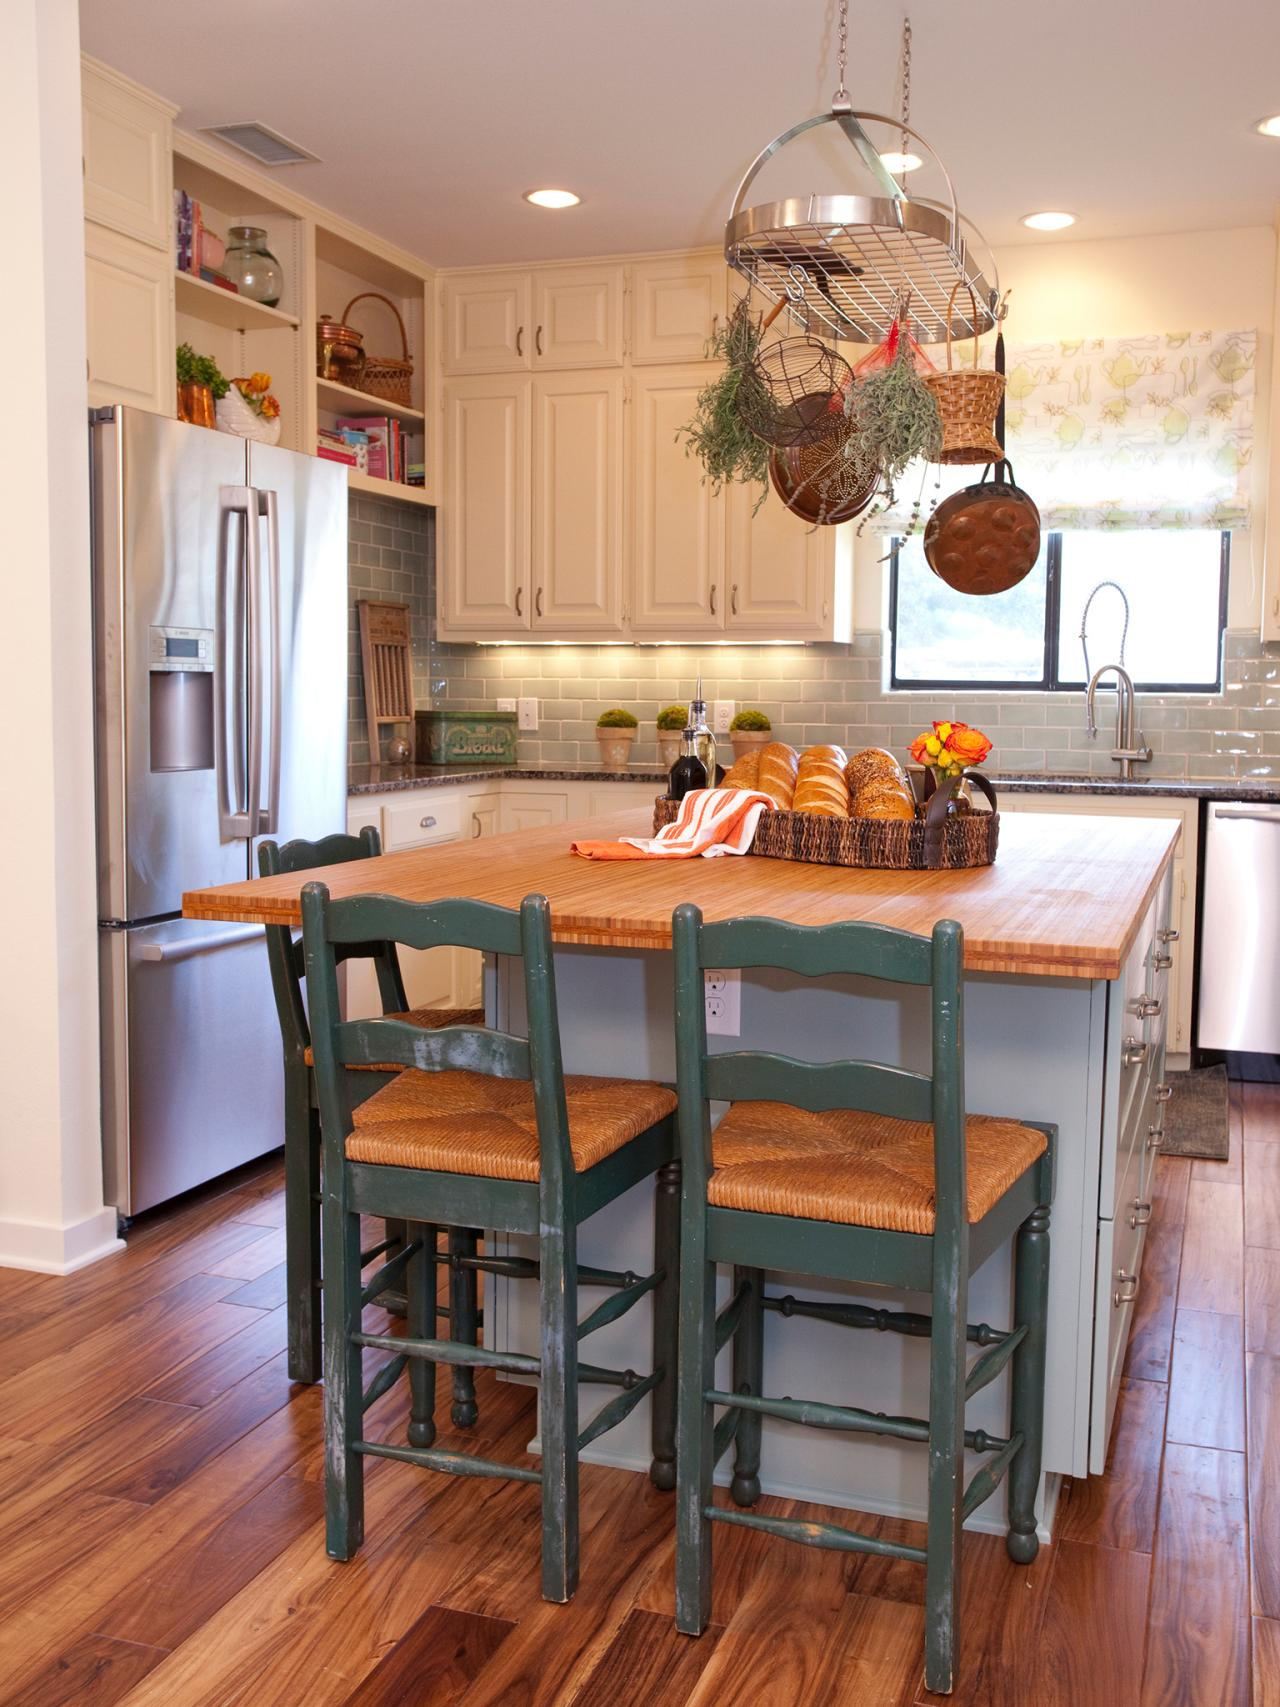 Amazing Tags: kitchen islands for small kitchens